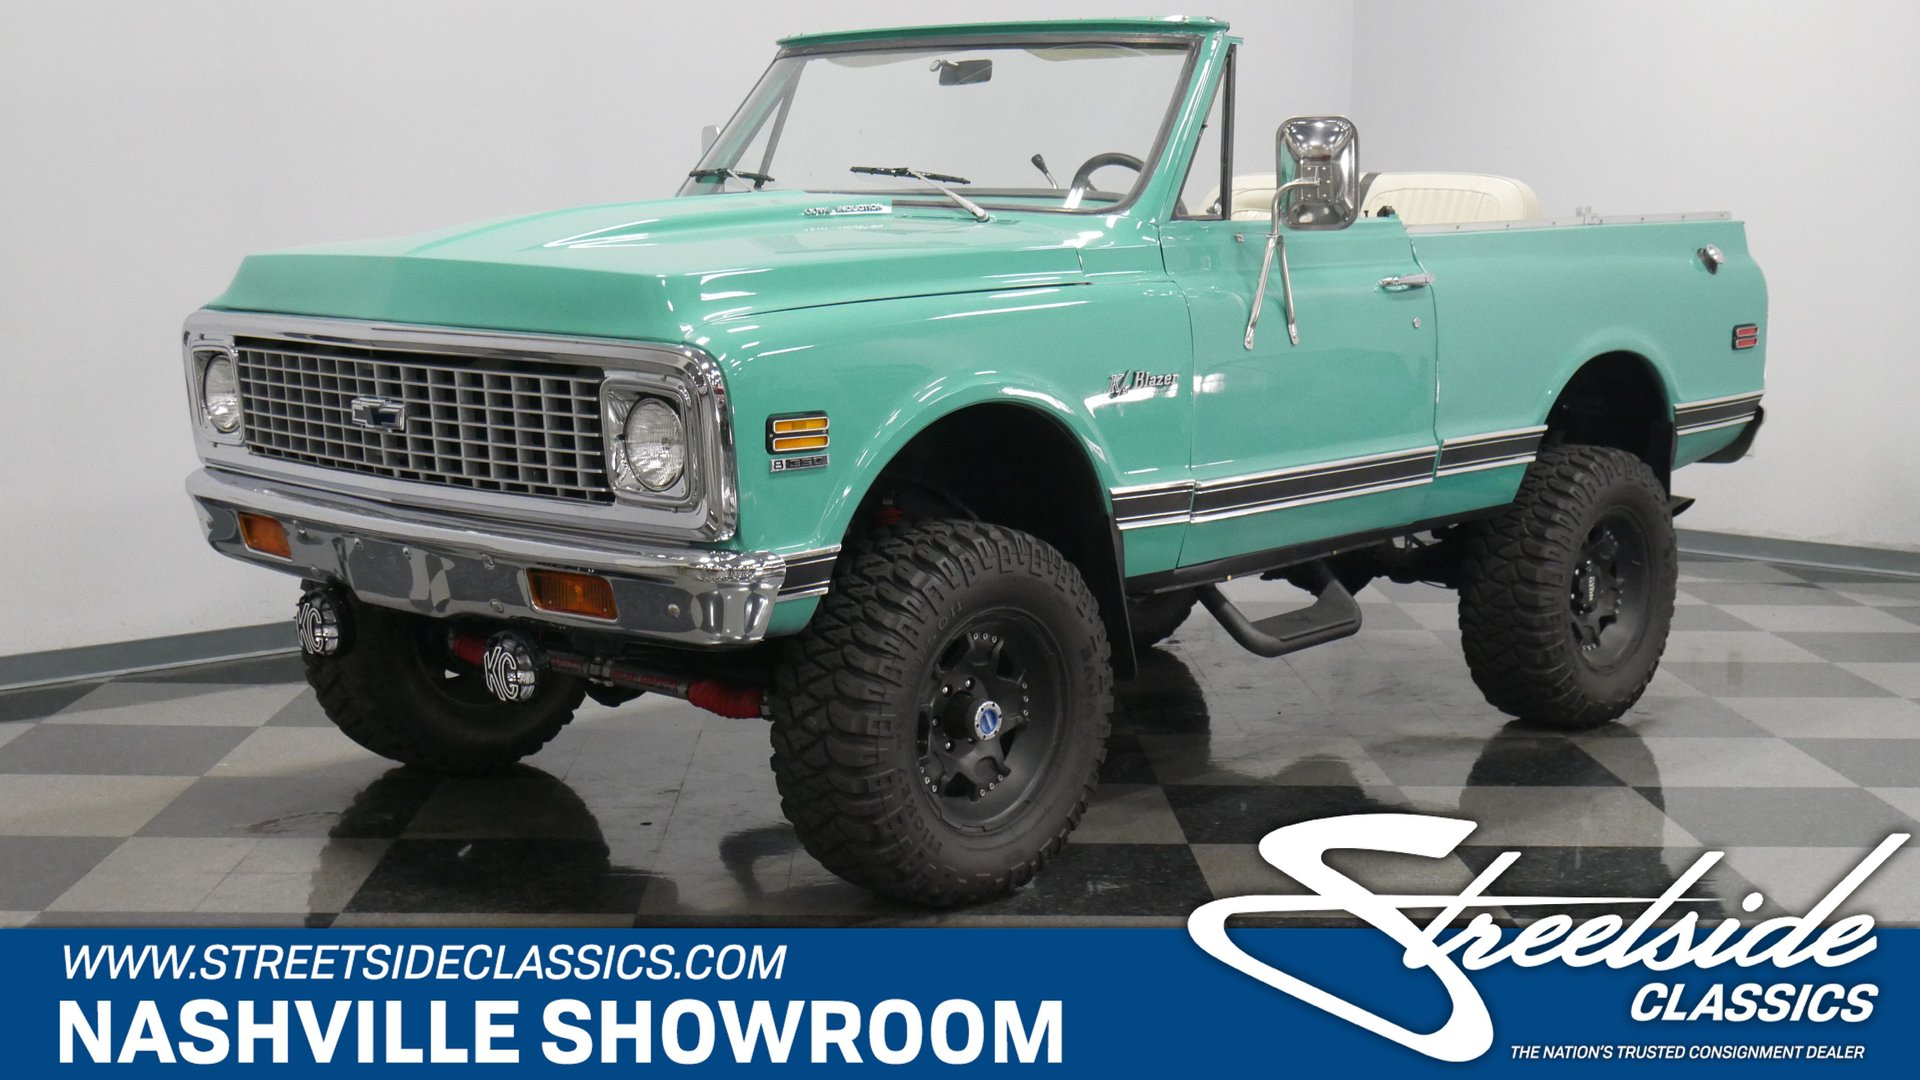 1972 Chevrolet Blazer Classic Cars For Sale Streetside Classics The Nation S 1 Consignment Dealer